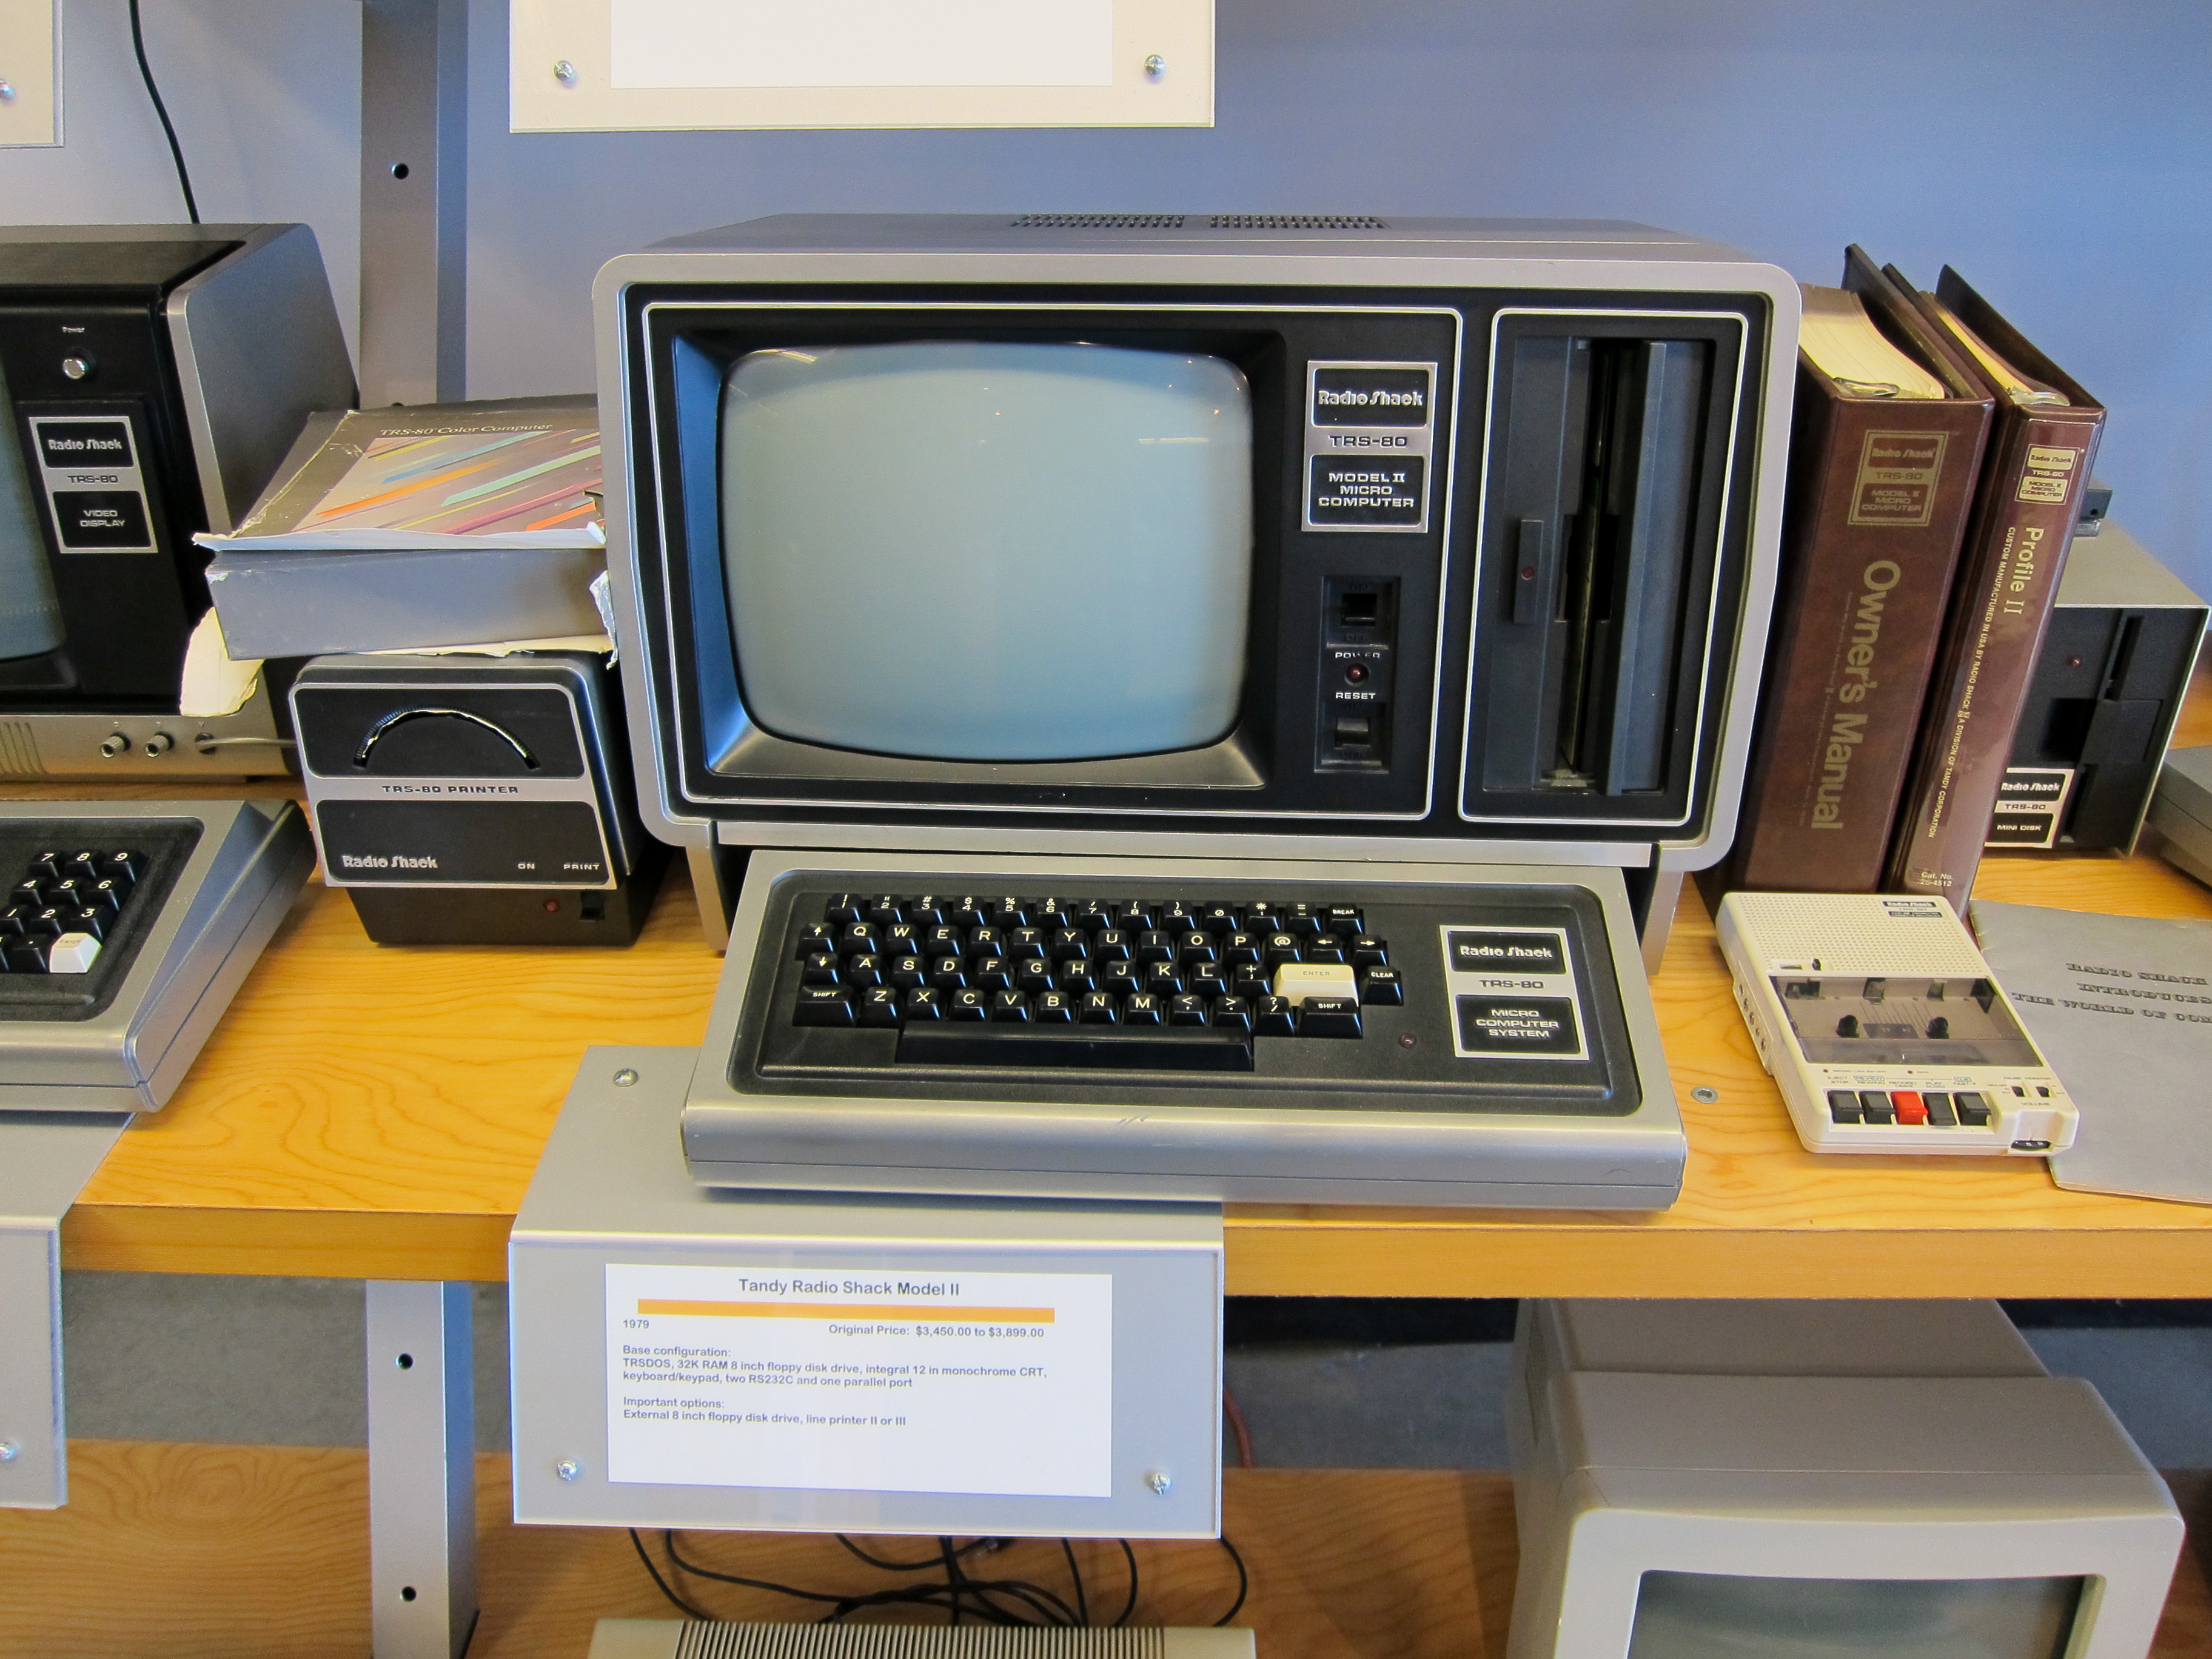 Ram Price >> File:Tandy Radio Shack Model II with 12in monochrome CRT & 8in floppy drive, external Mini Disk ...